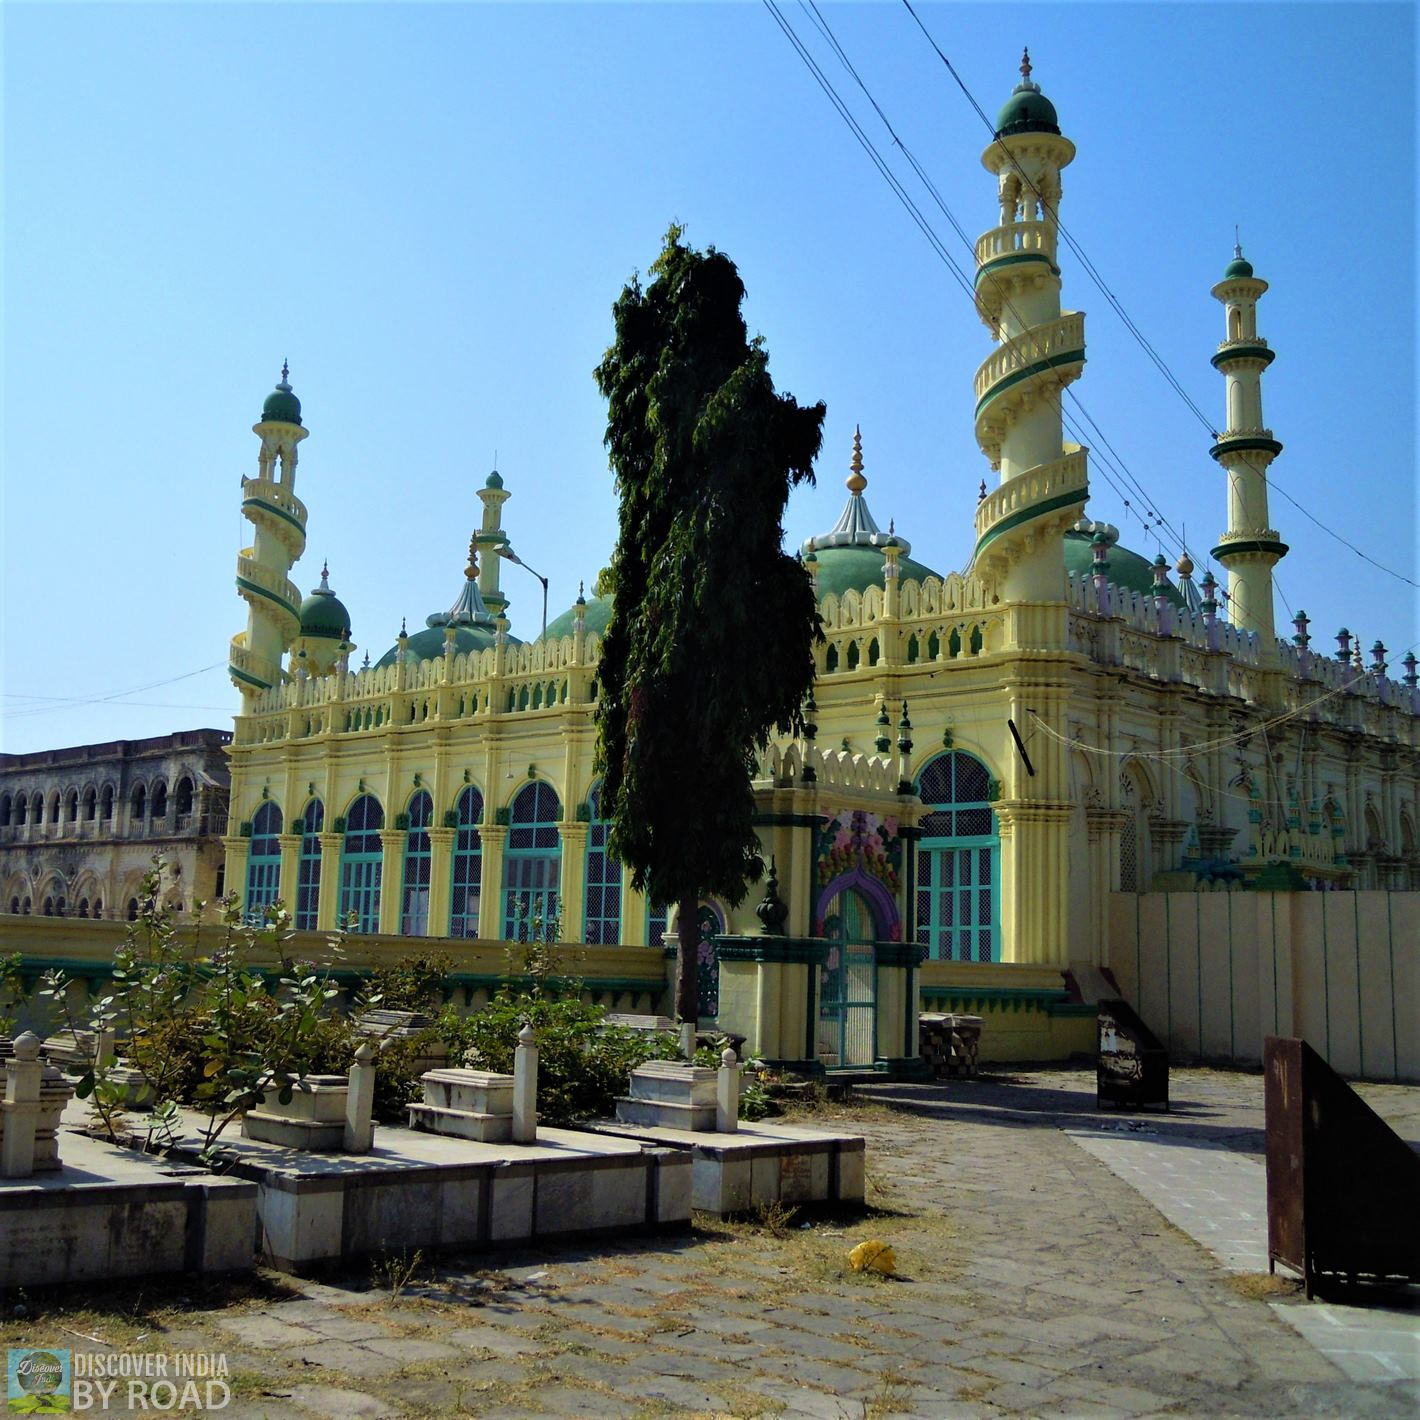 Yellow Jami Masjid near Mahabat khan's Tomb